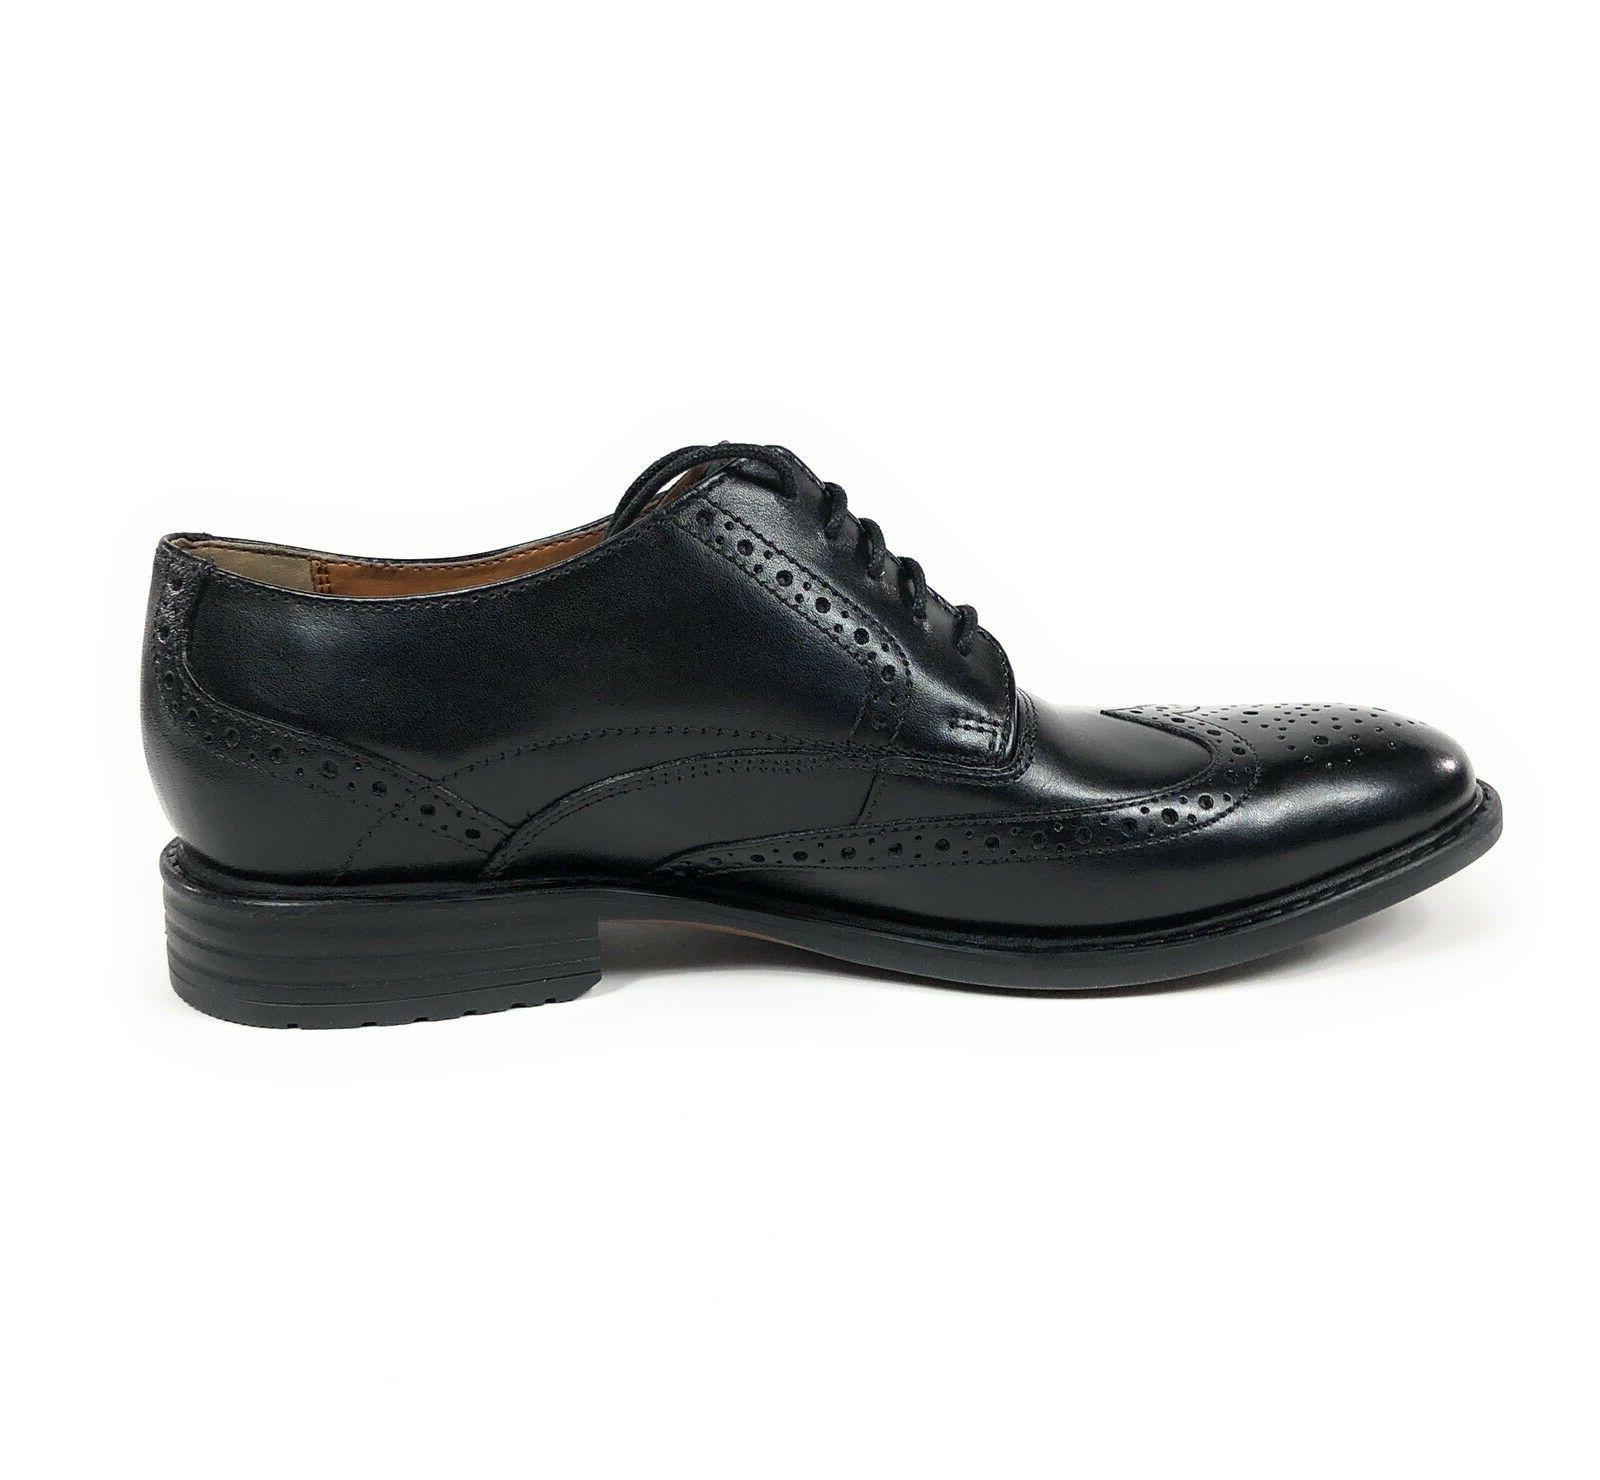 Bostonian Edge Oxford Wingtip Leather Dress Size 11